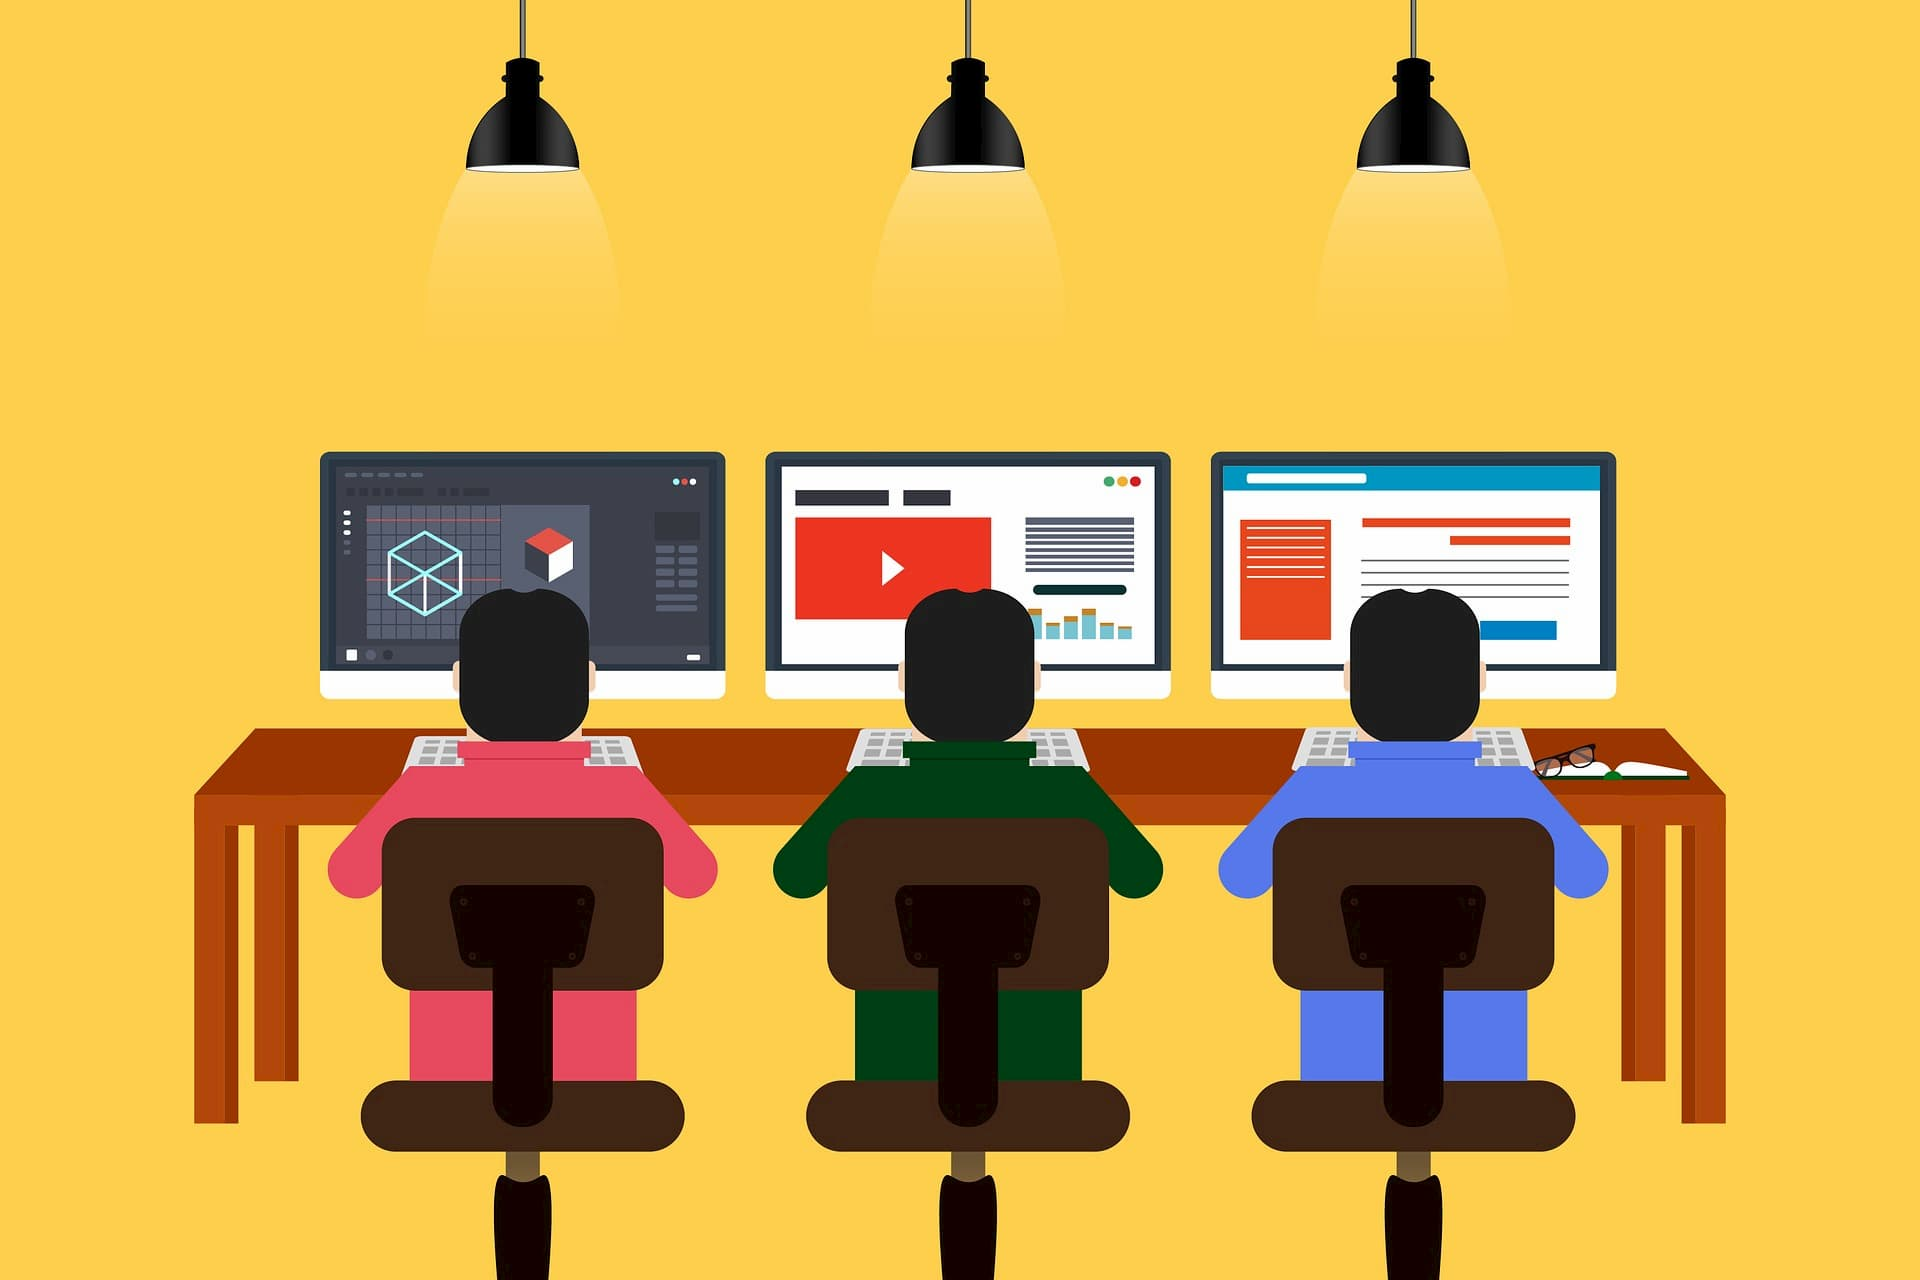 3 programmers sitting in front of their computers